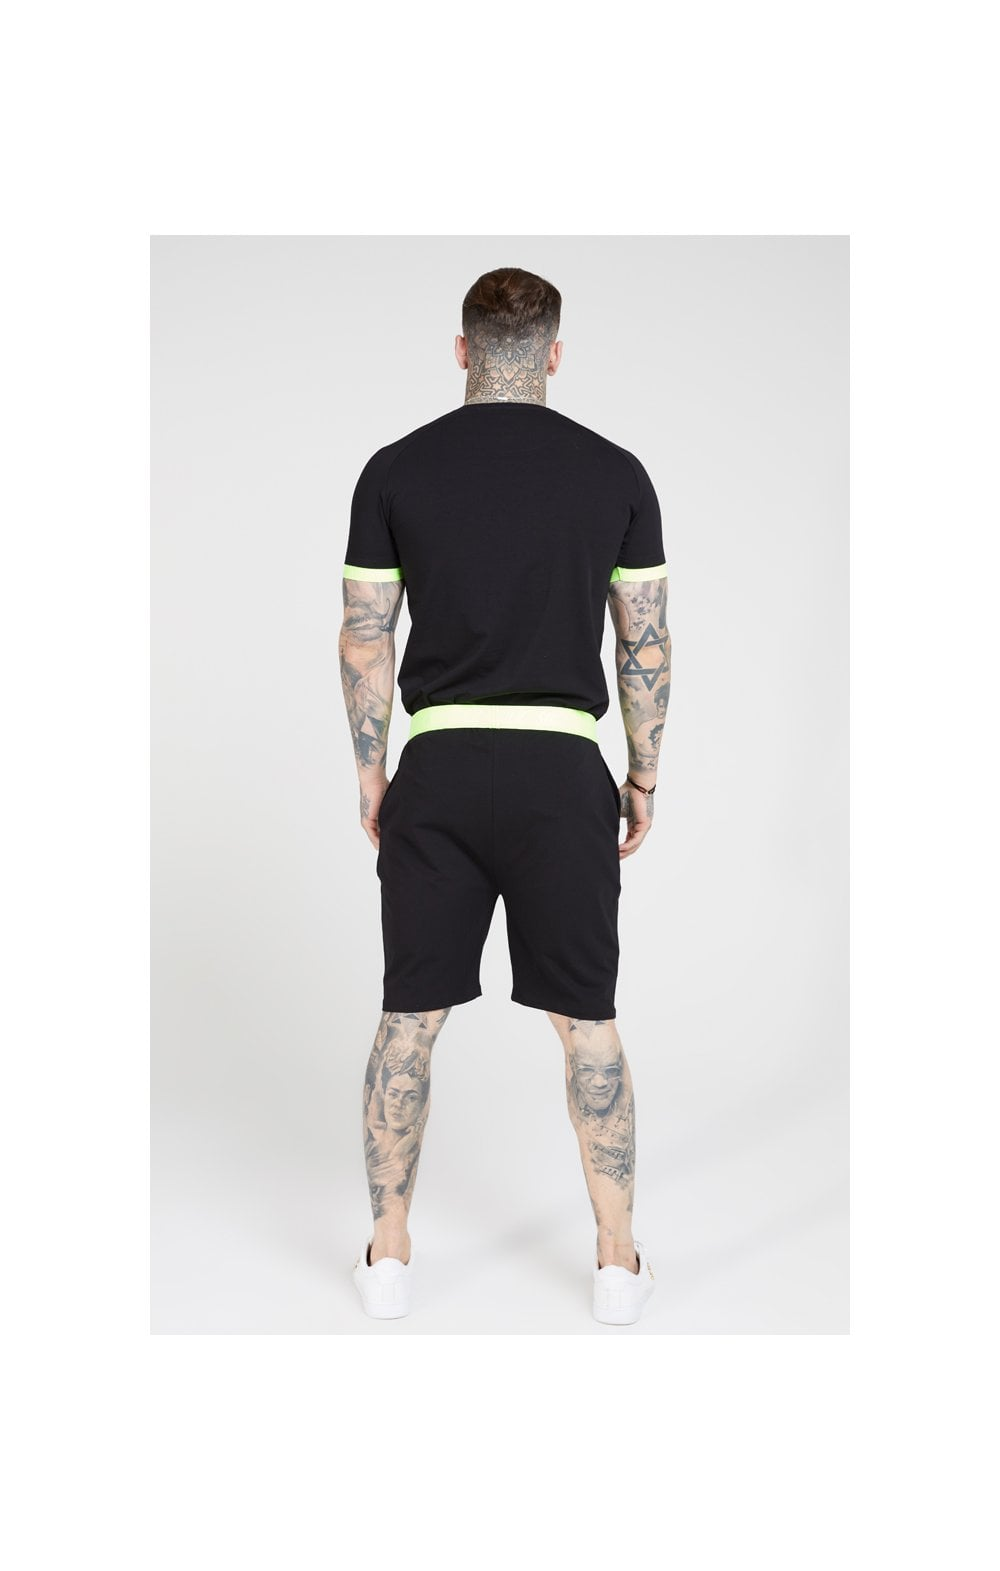 SikSilk Relaxed Fit Shorts – Black & Neon Yellow (5)